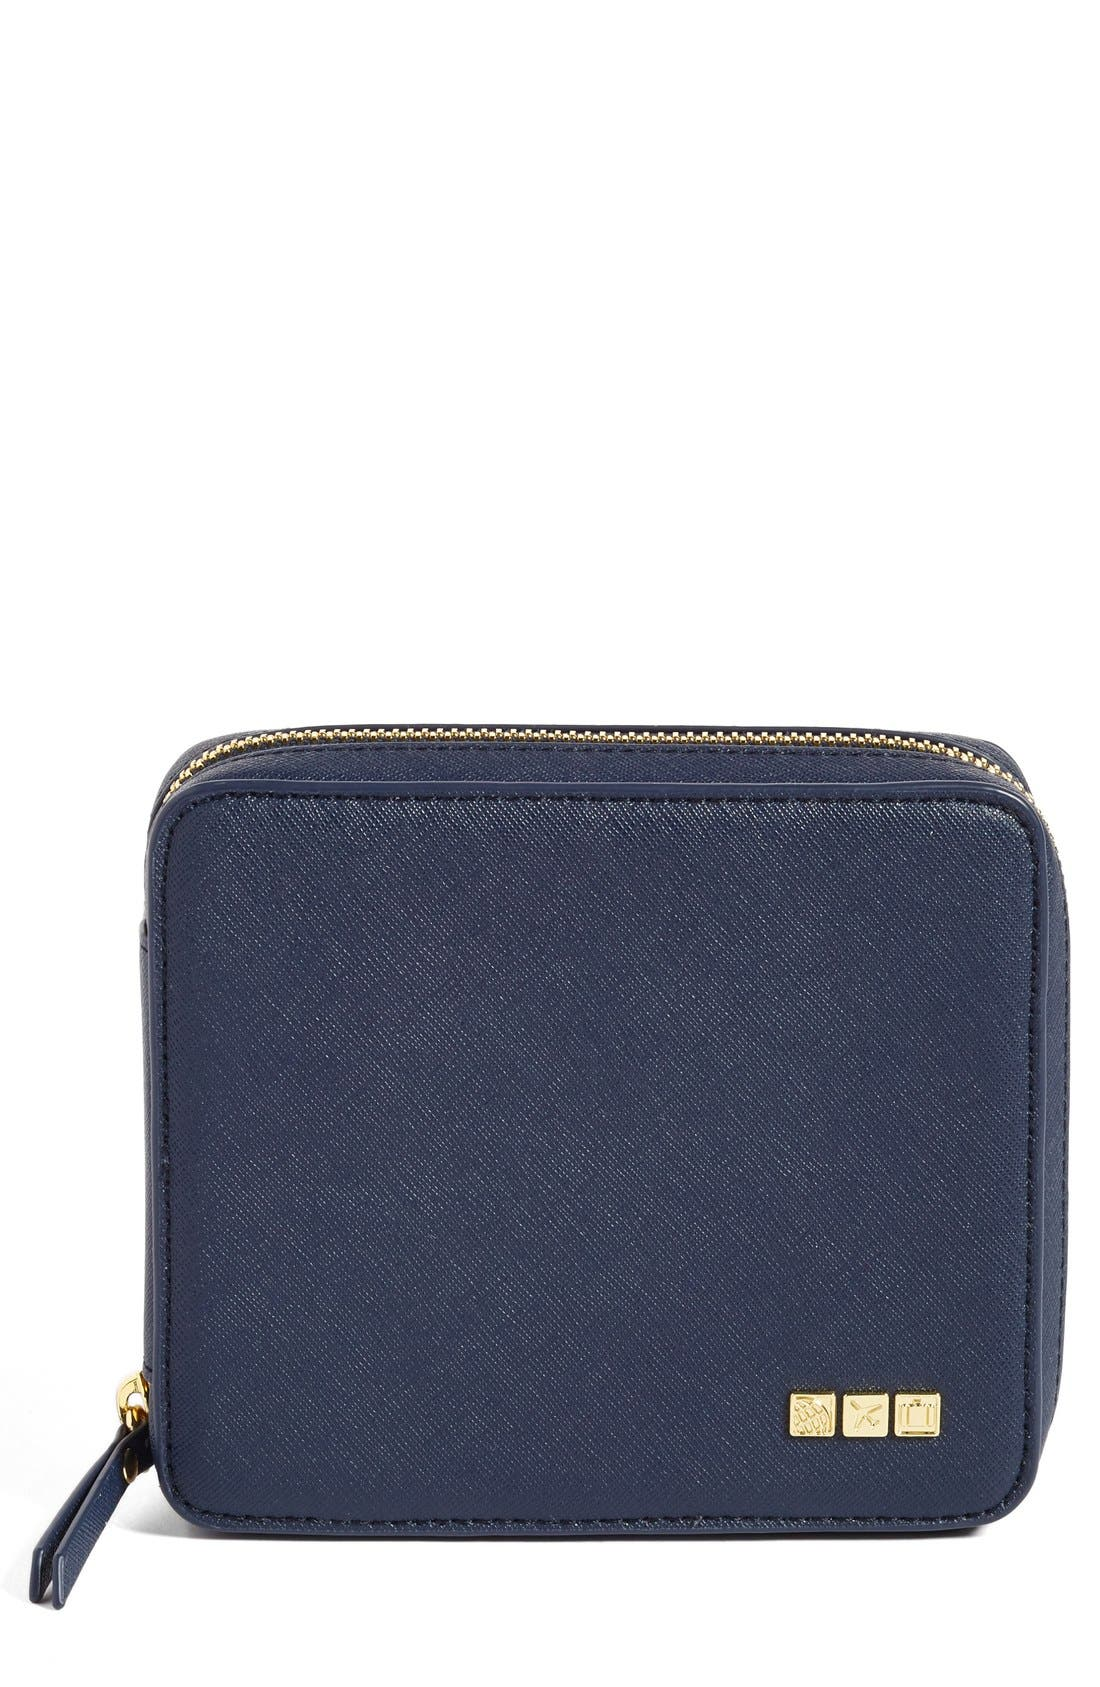 Mini Bar Kit,                             Alternate thumbnail 2, color,                             Navy